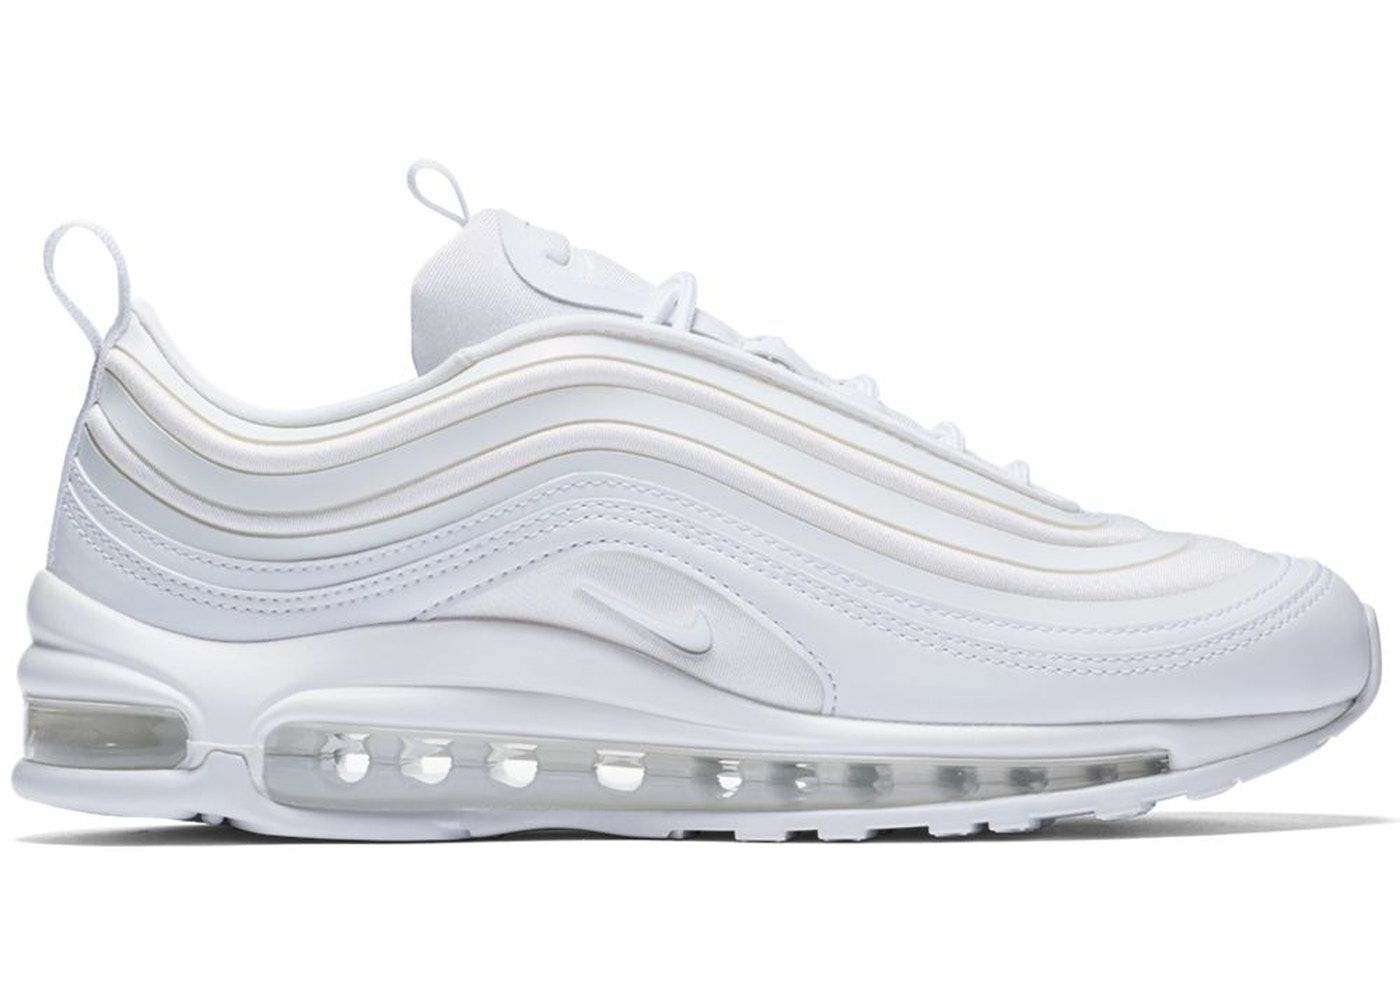 Hot Shoe The Best Nike Air Max 97 Sweets Nike Air Max Nike Air Max 97 Nike Air